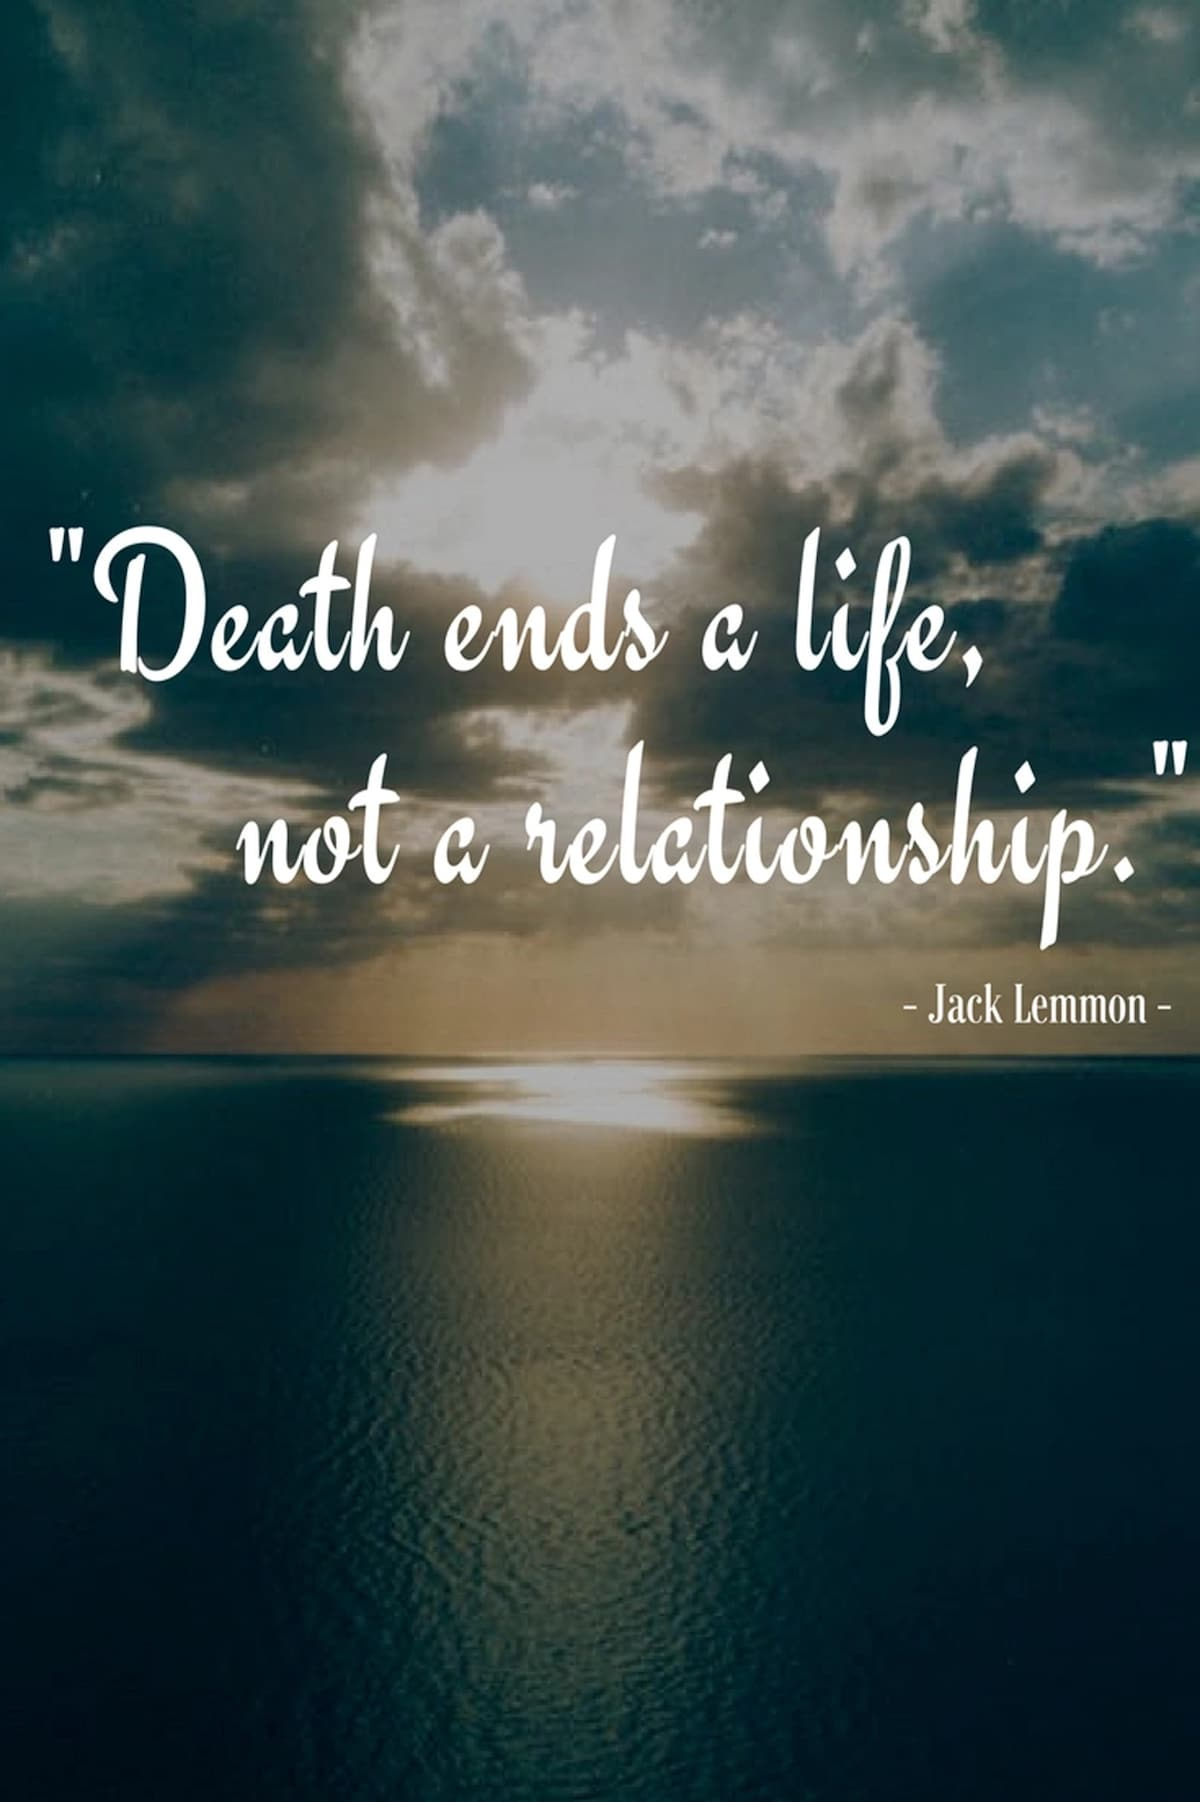 Sad quotes about death of a loved one ▷ Tuko.co.ke